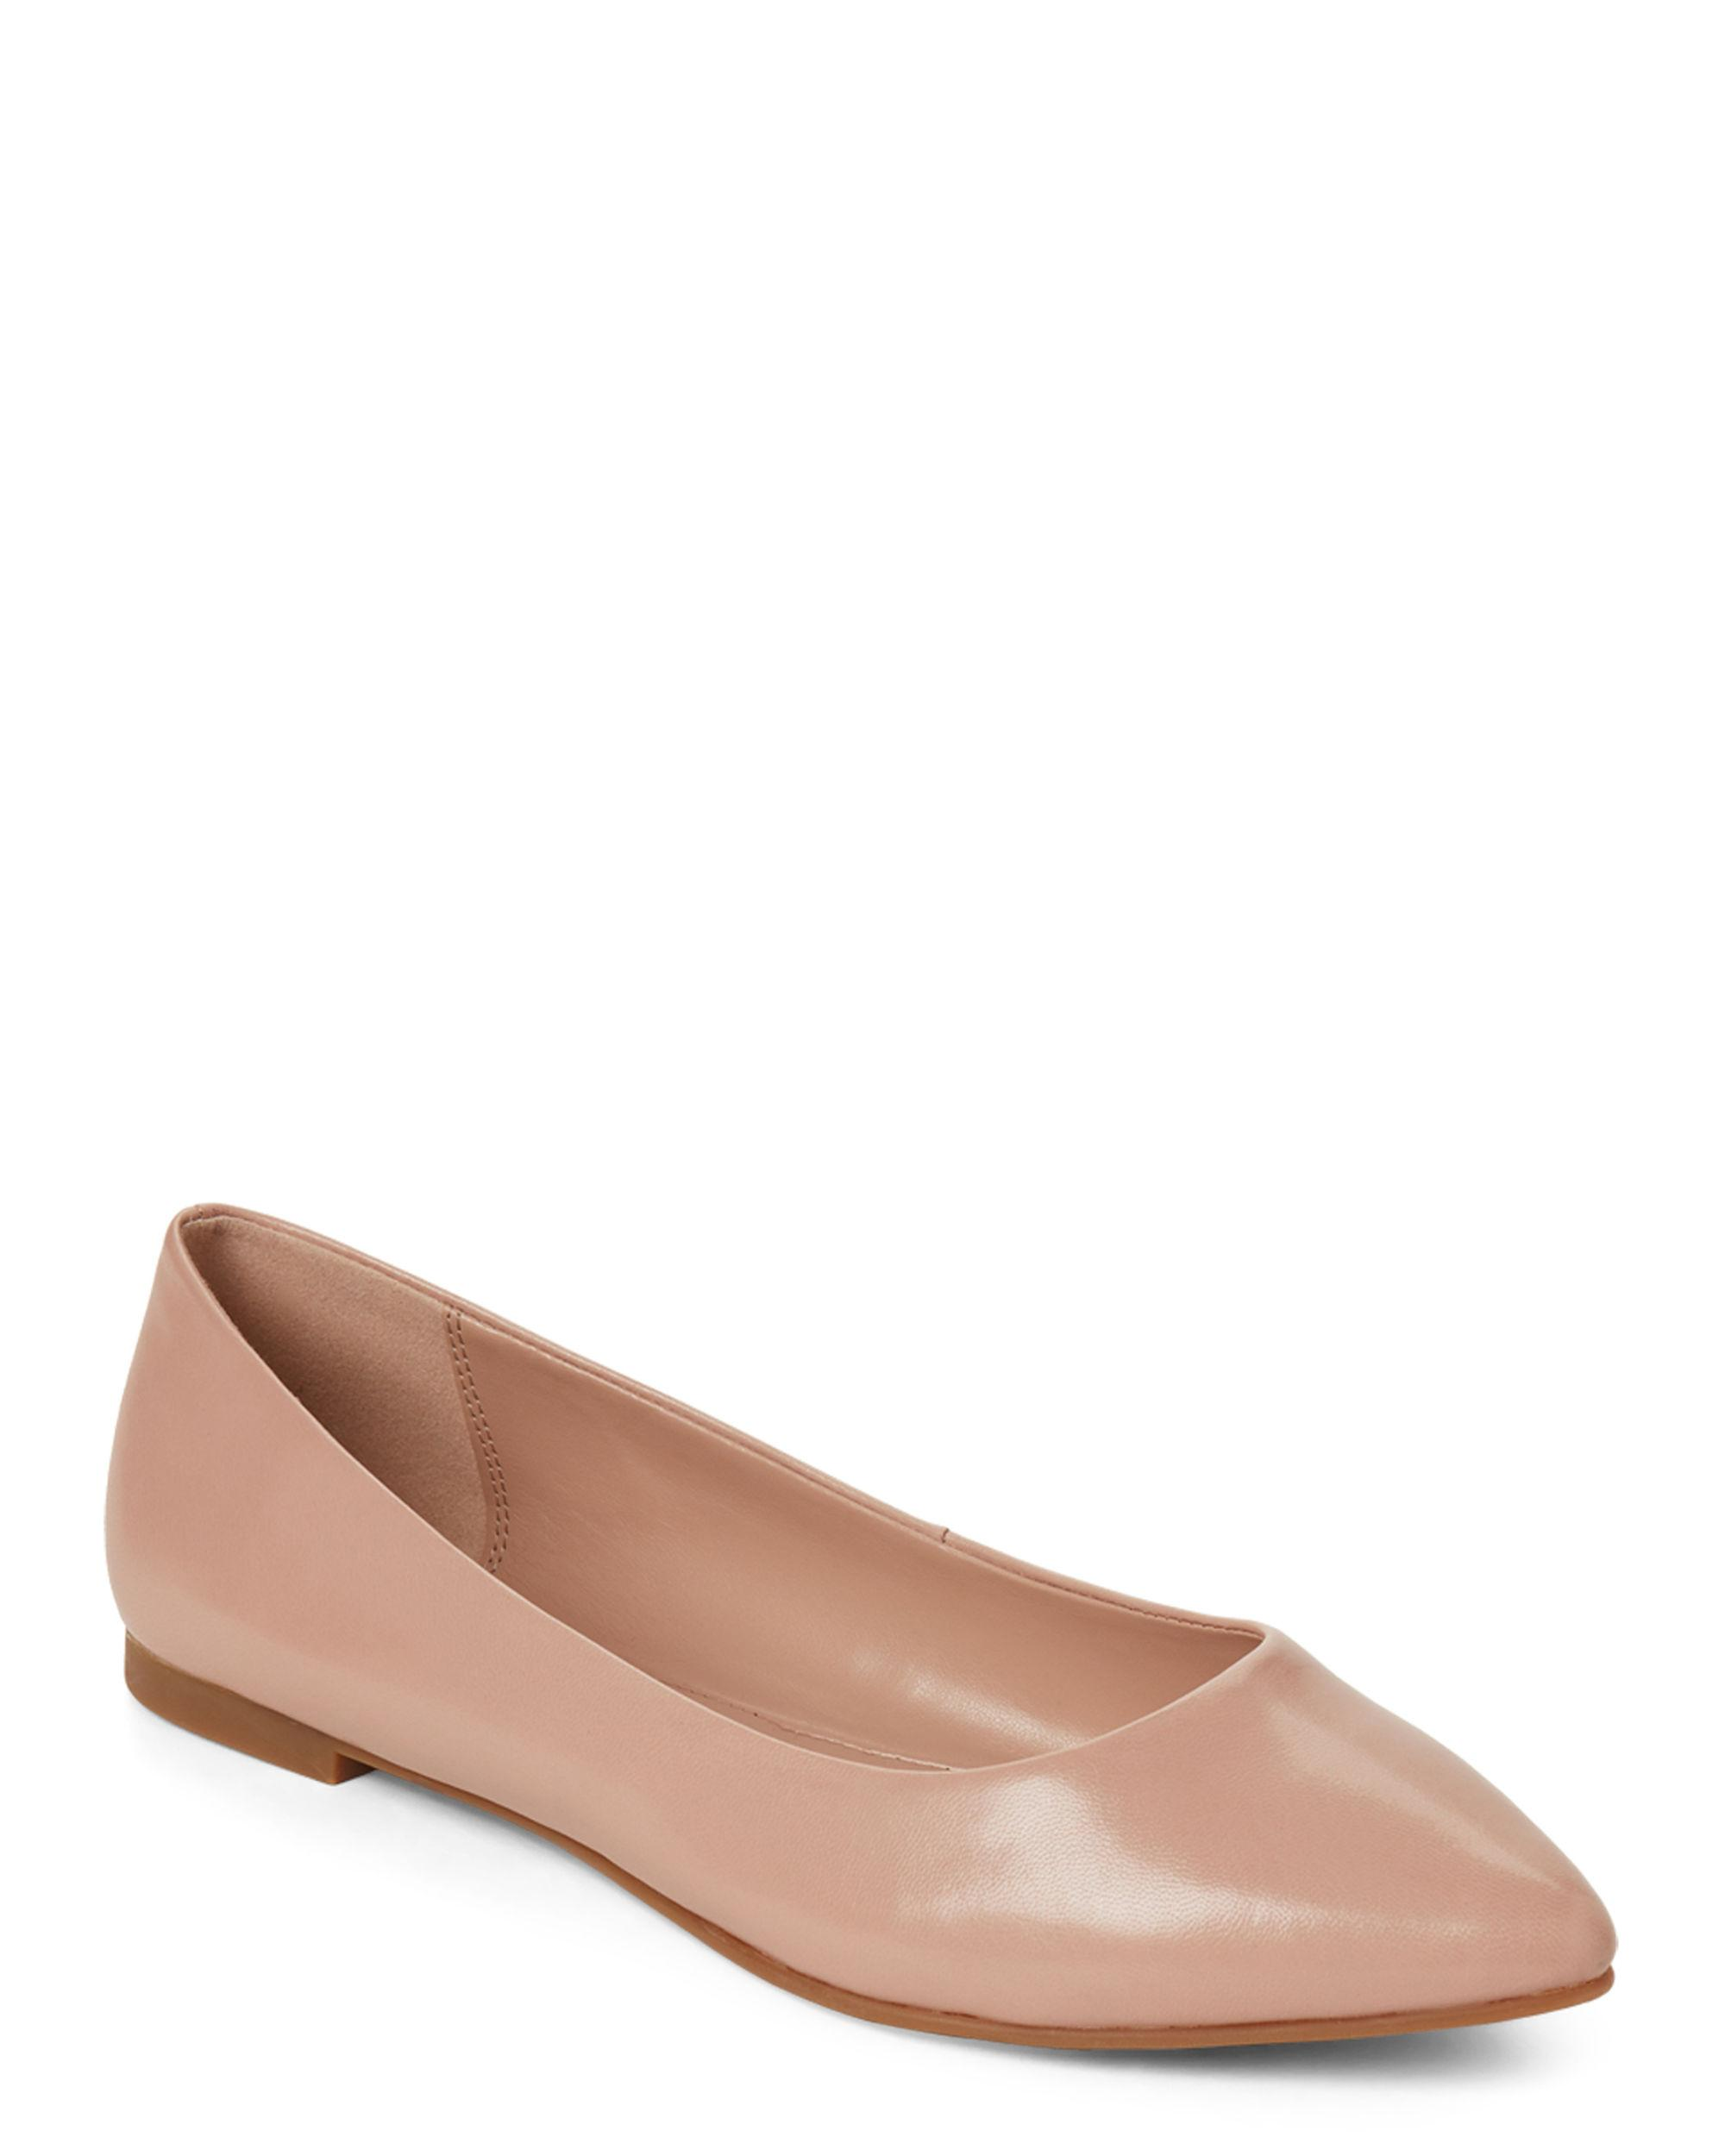 9199d7f5ba50 BCBGeneration. Women s Shell Millie Leather Flats